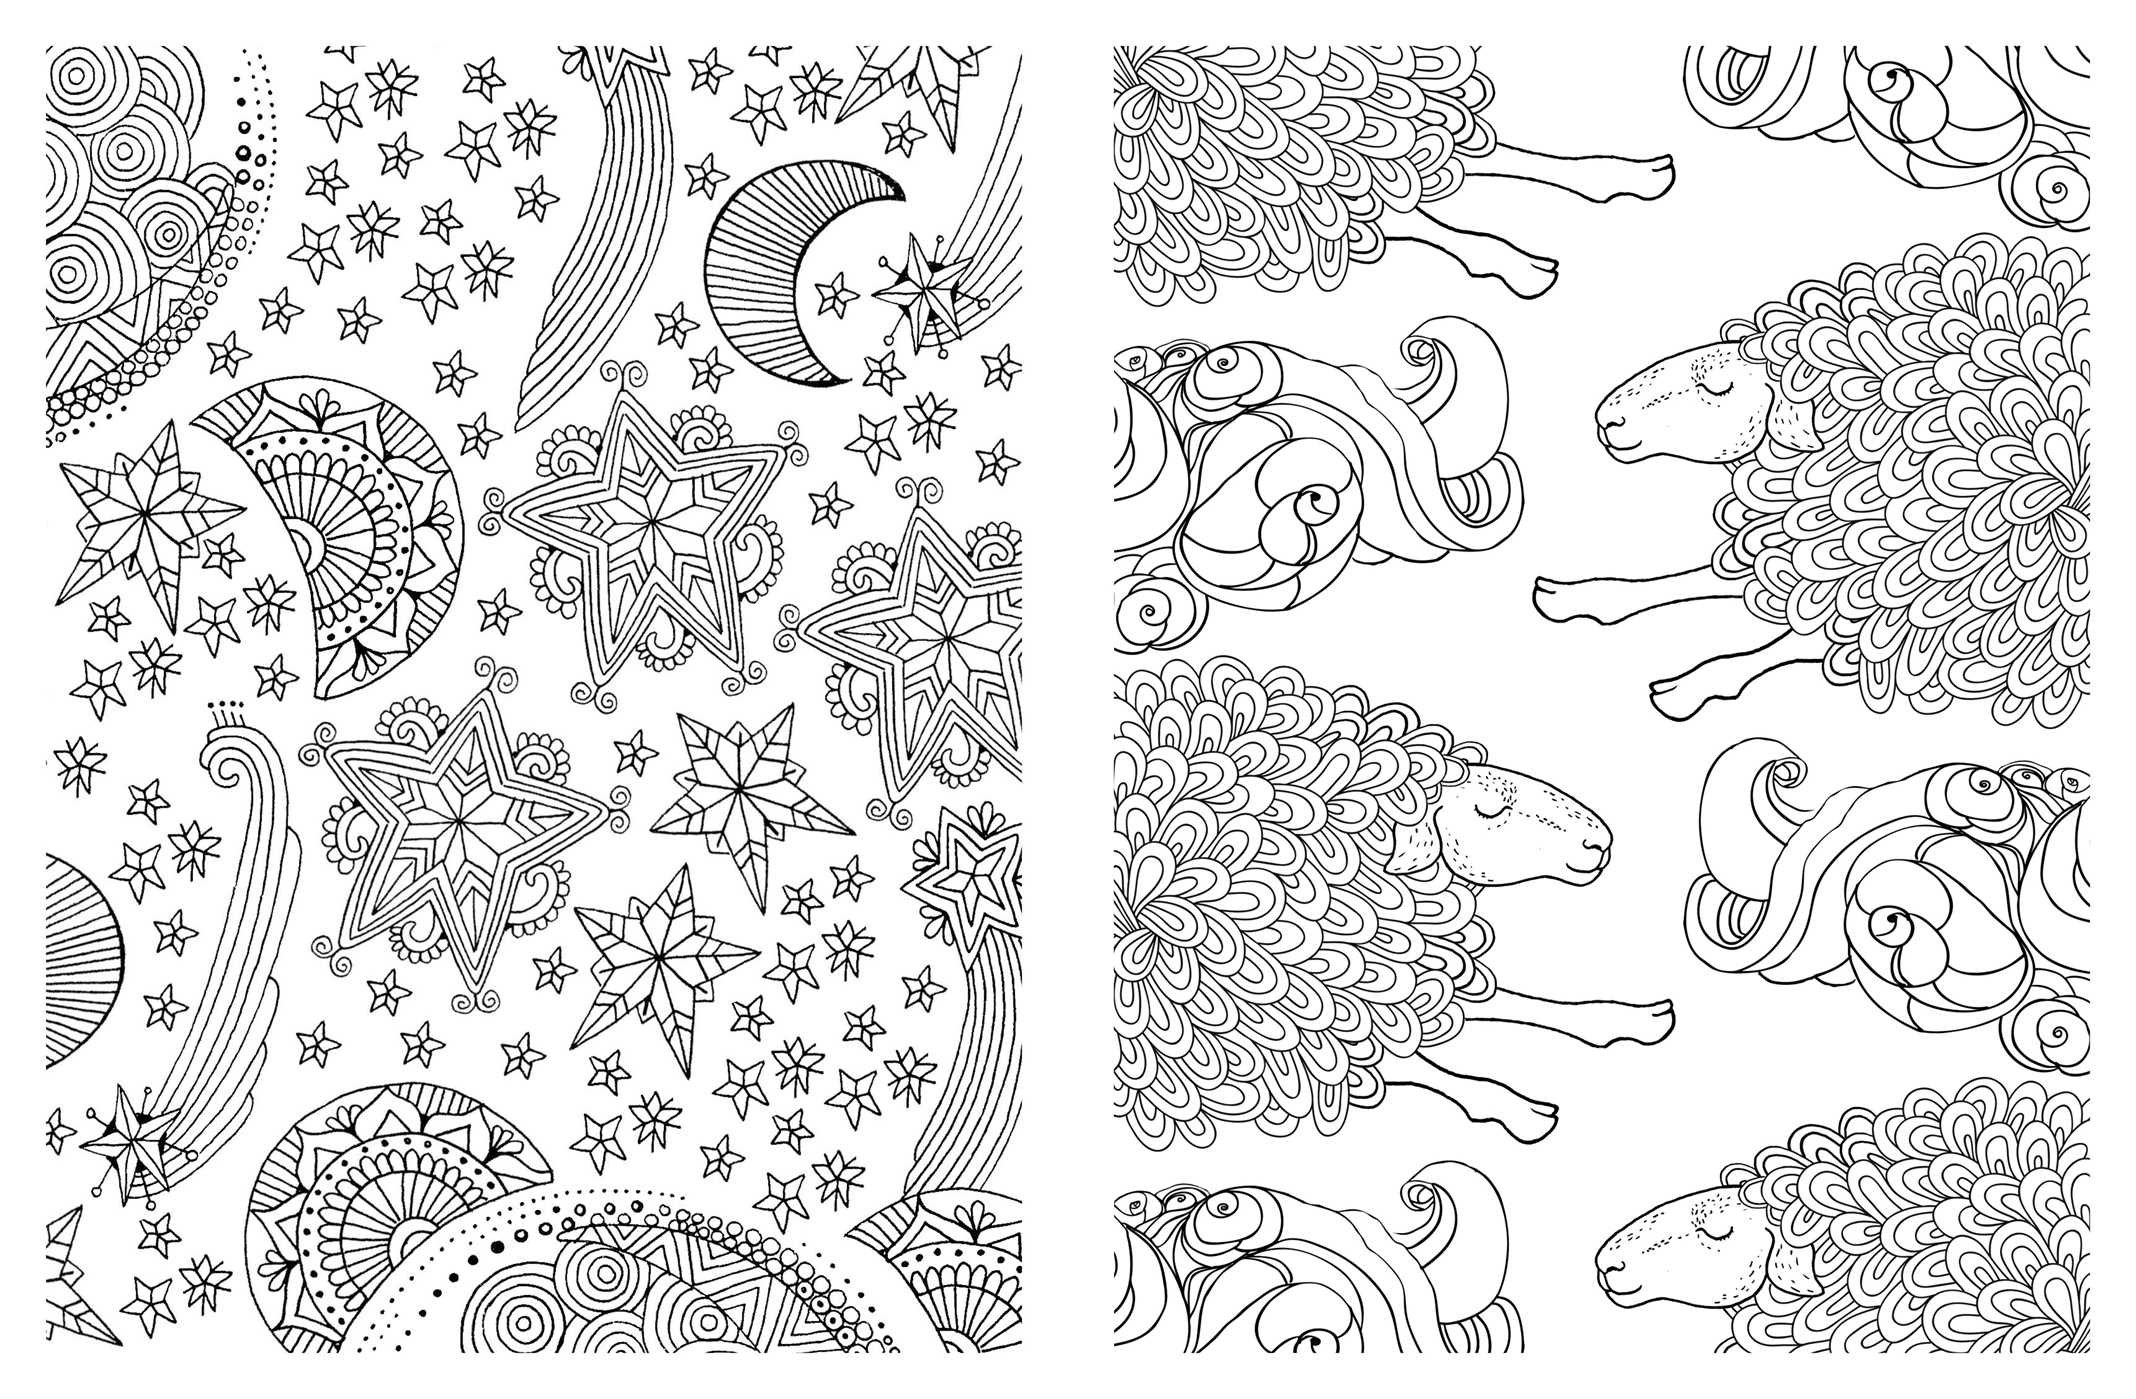 Amazon Posh Adult Coloring Book Soothing Designs for Fun